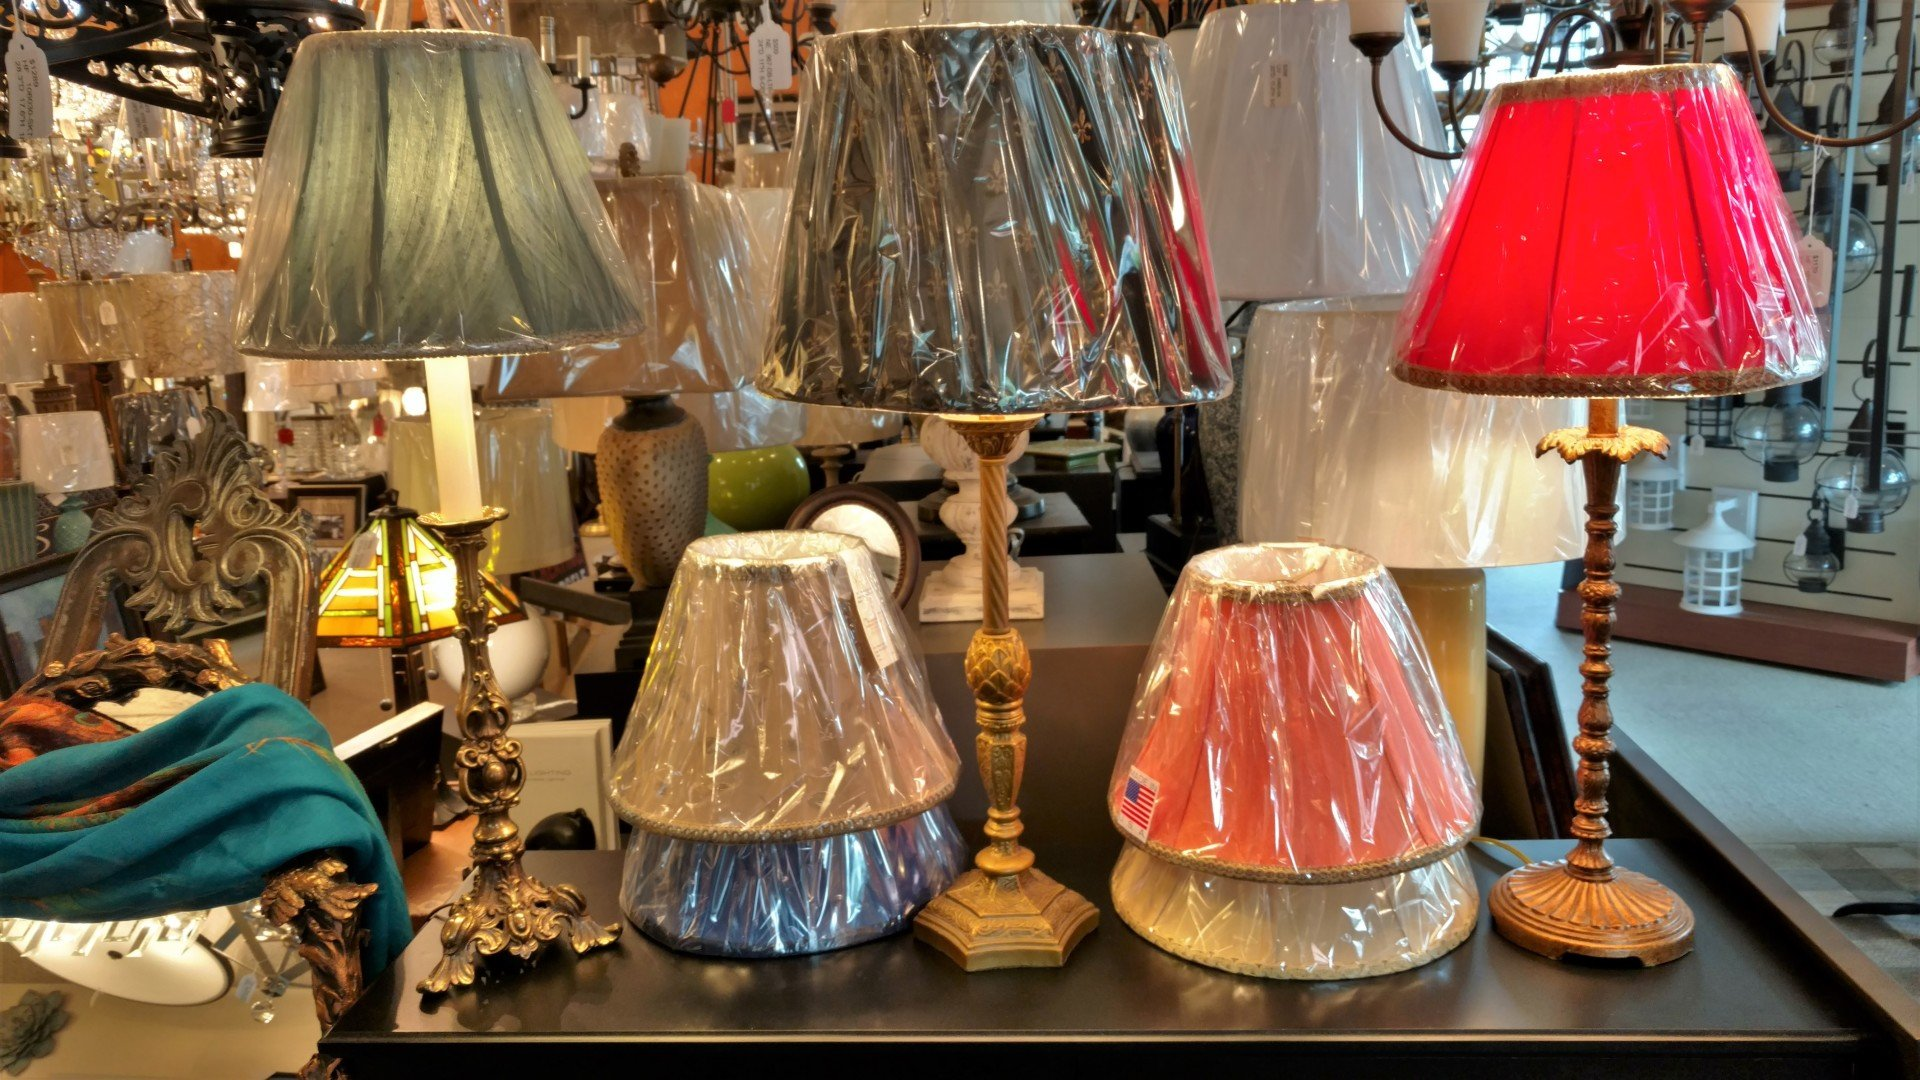 Avon lighting showroom local quality products services avonlighting shades lights ceilingfixtures hanging aloadofball Image collections